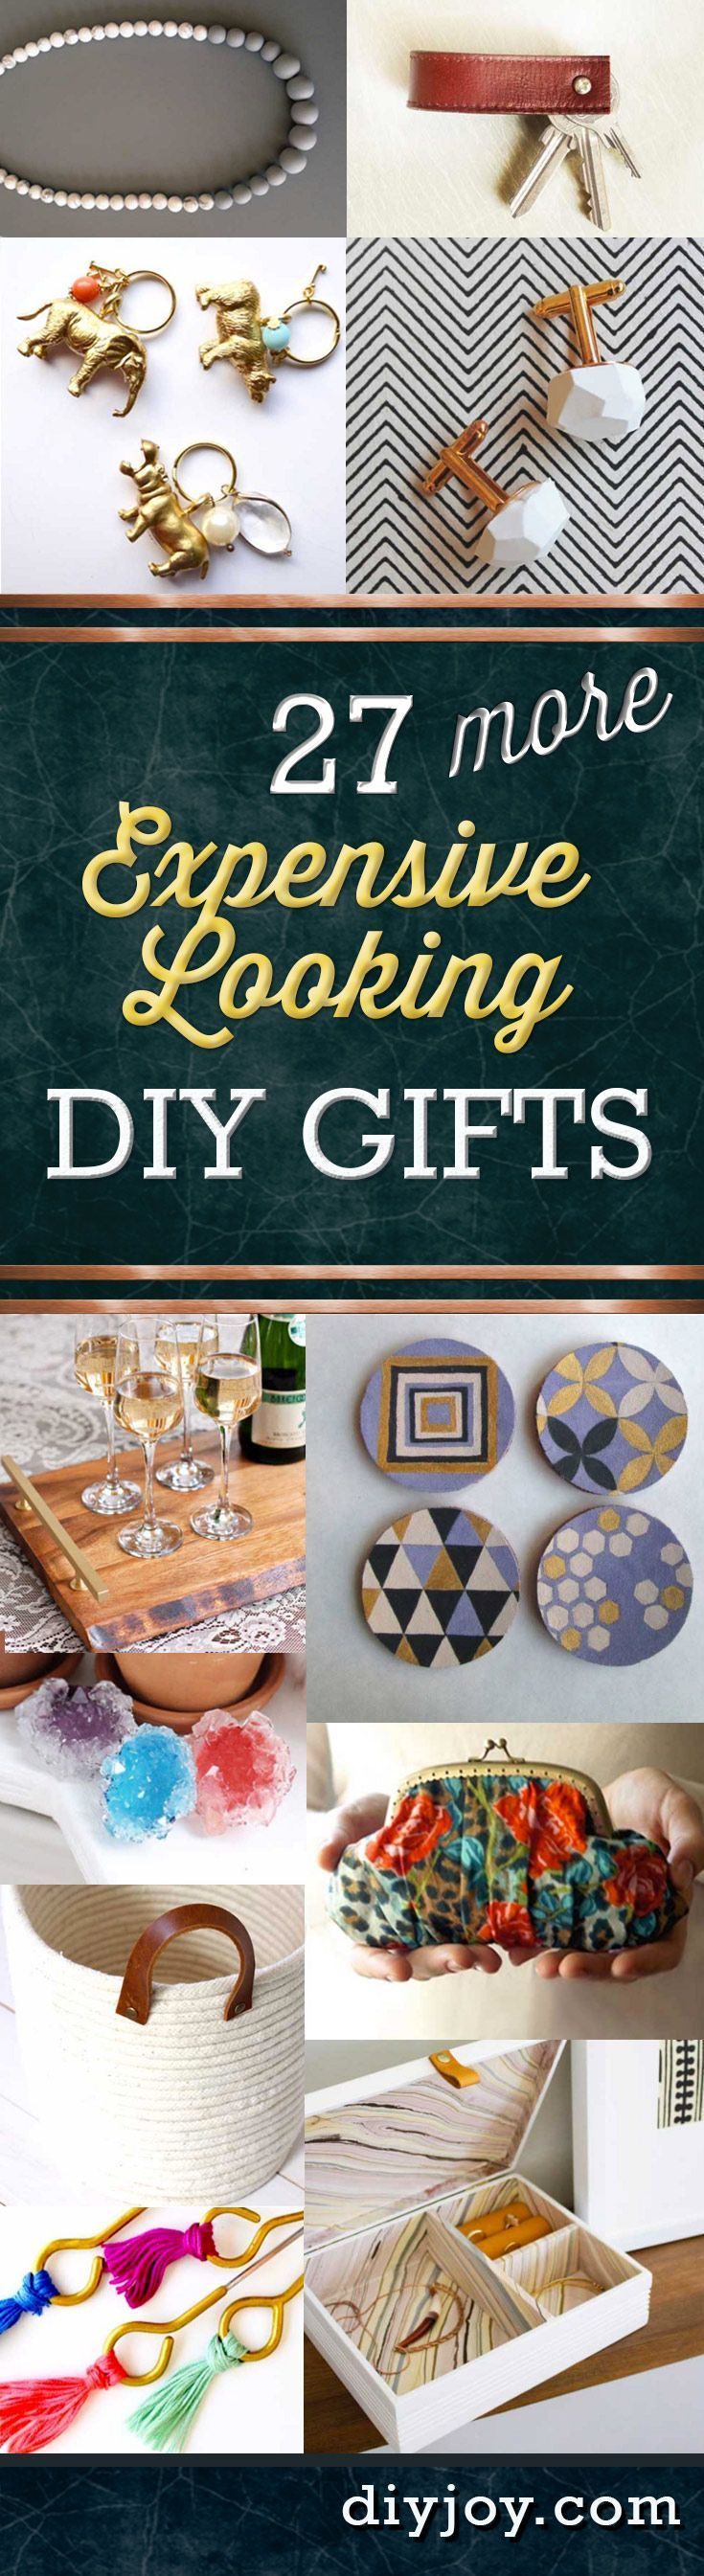 27 Expensive Looking Inexpensive DIY Gifts Diy gifts